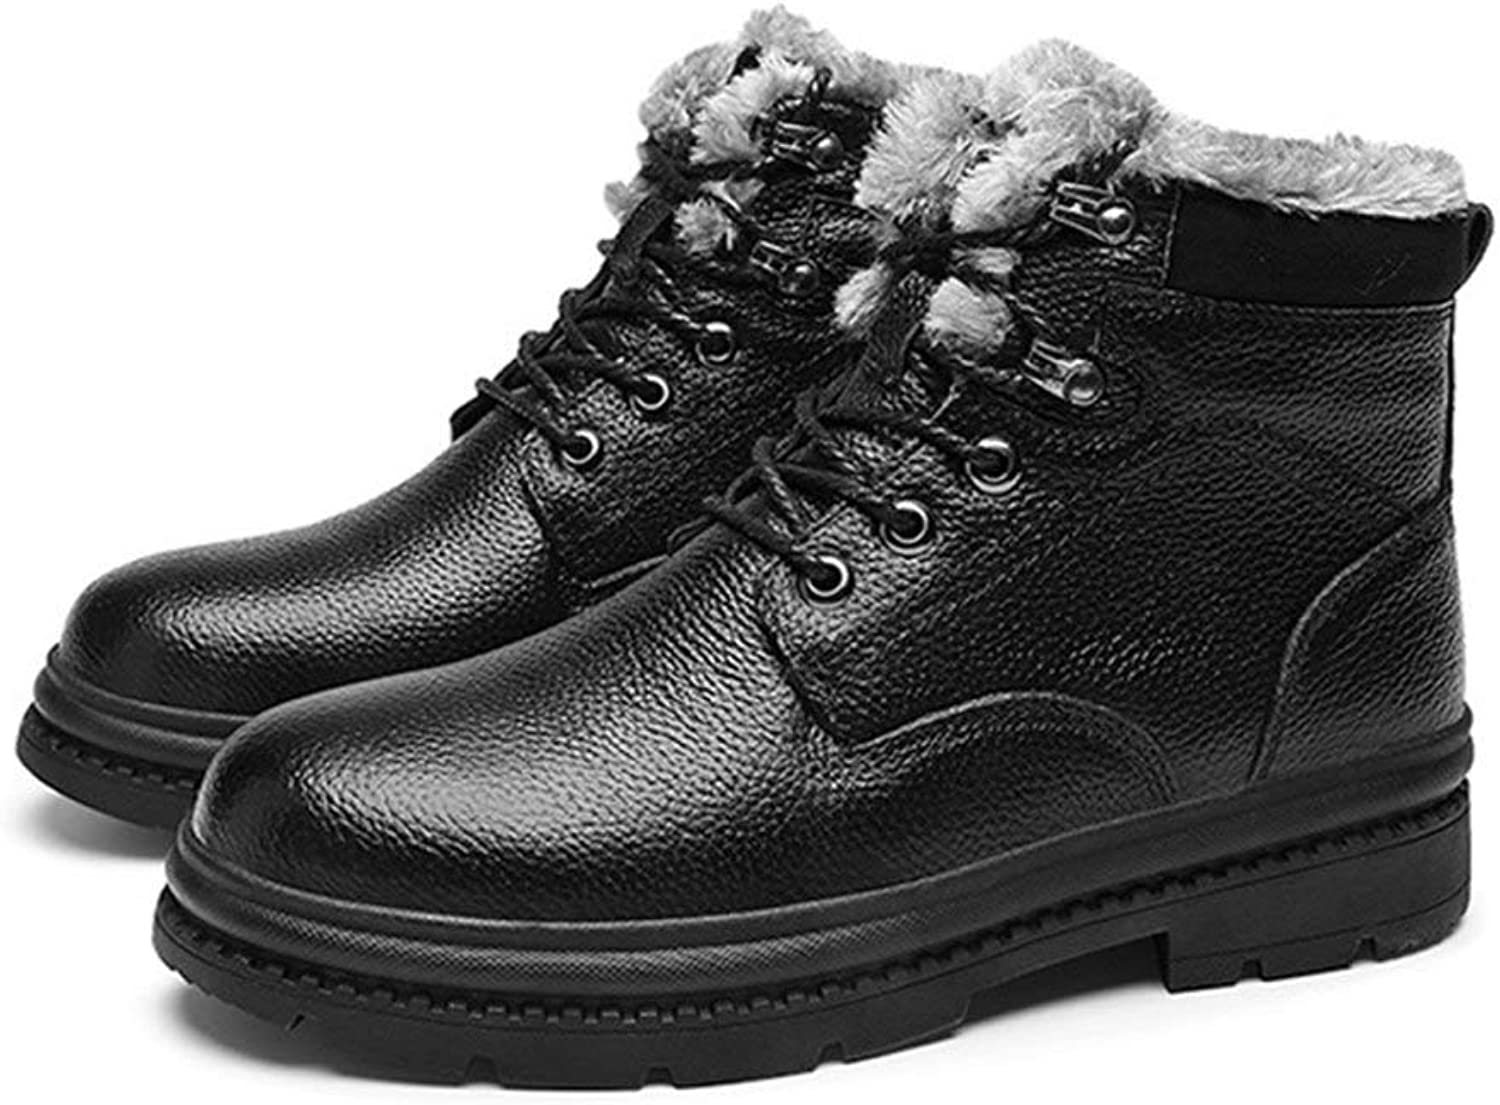 Men's Winter shoes, Cowhide Plush Lining Outdoor Hiking shoes